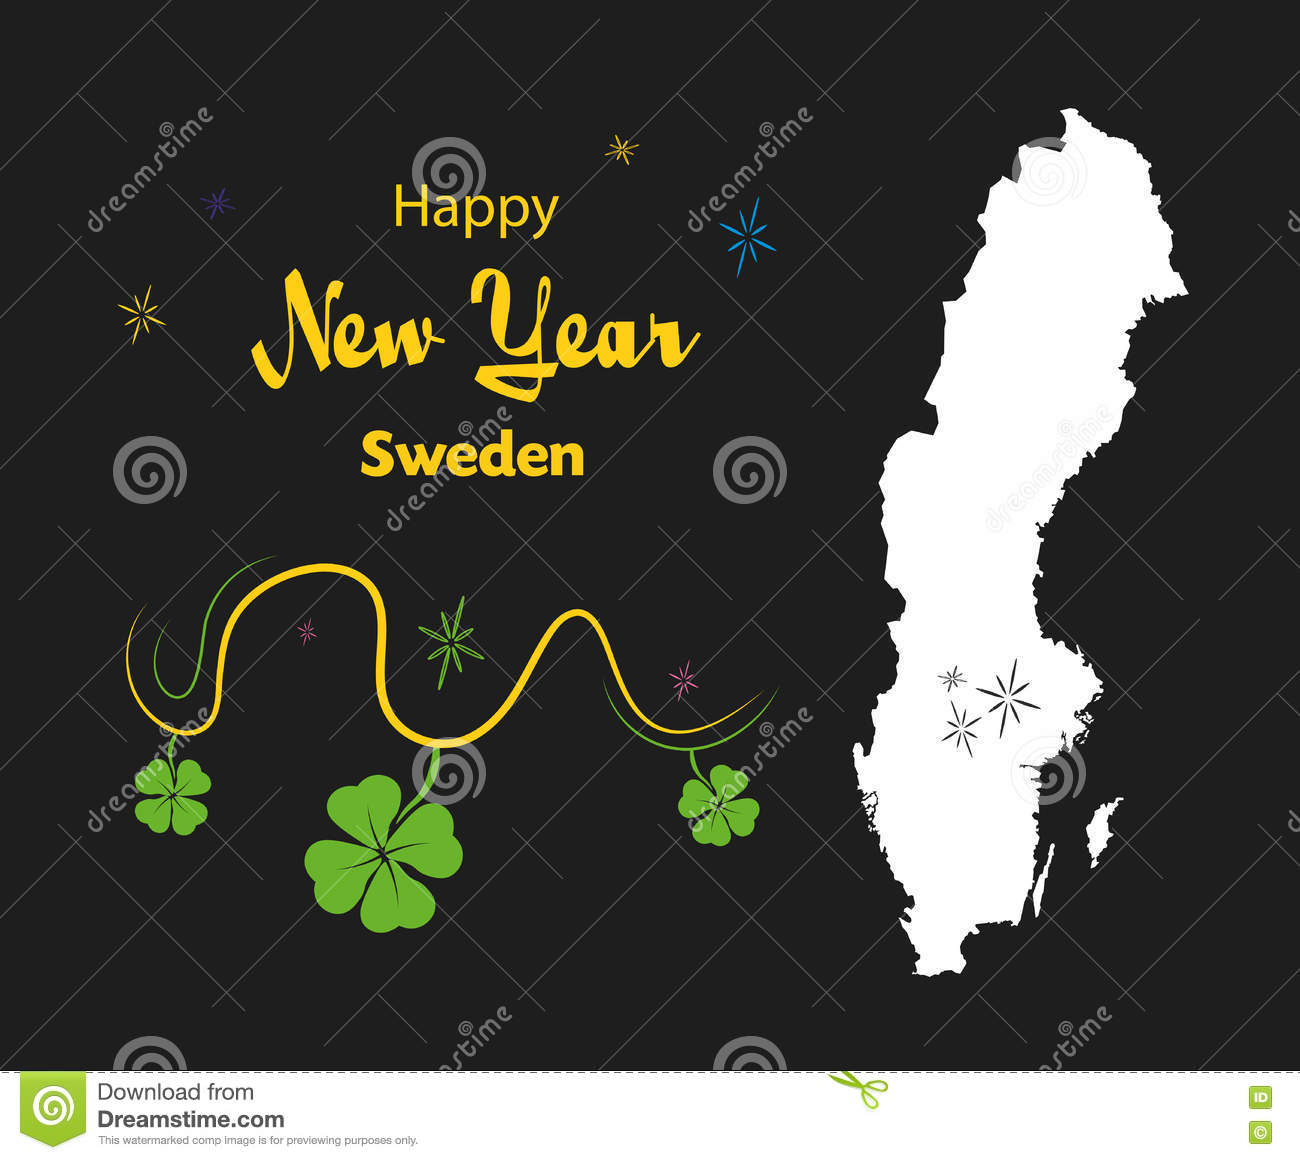 download happy new year theme with map of sweden stock illustration illustration of cloverleaf